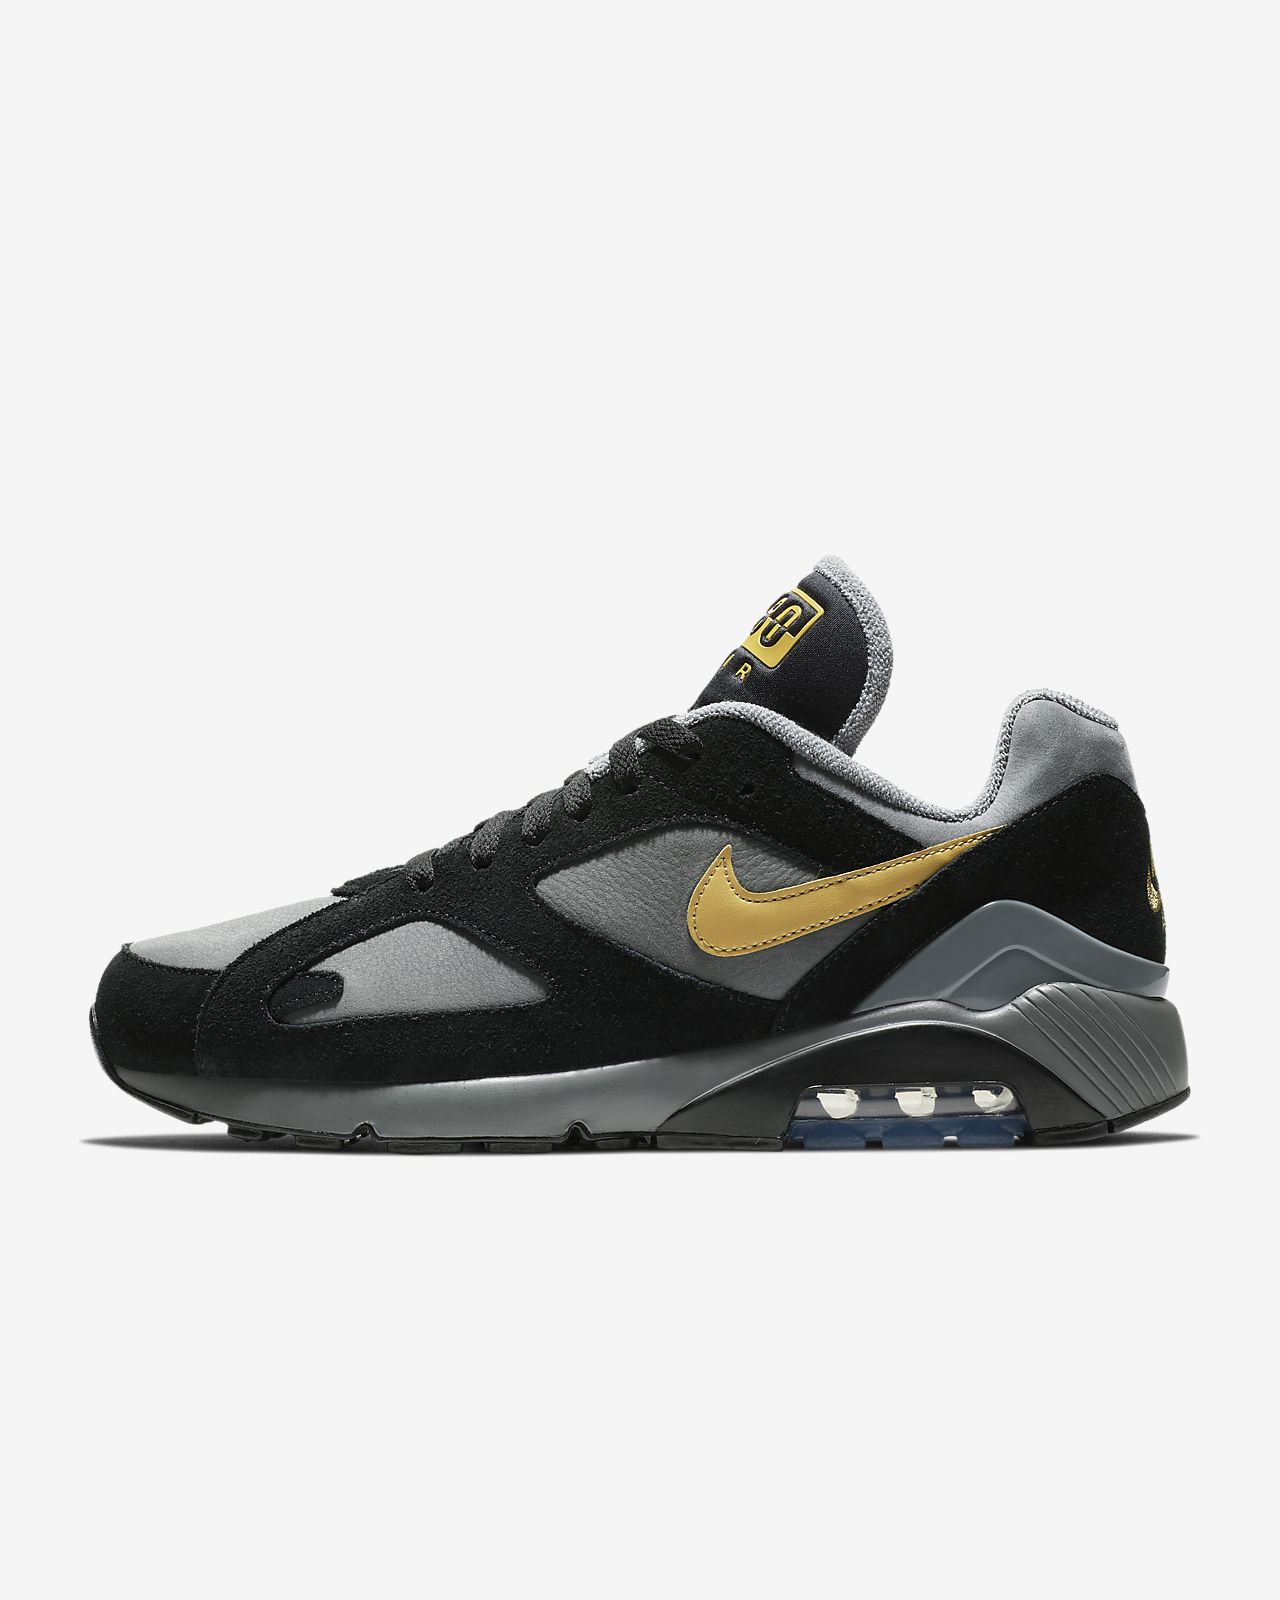 best service 793f9 f8532 ... Chaussure Nike Air Max 180 pour Homme